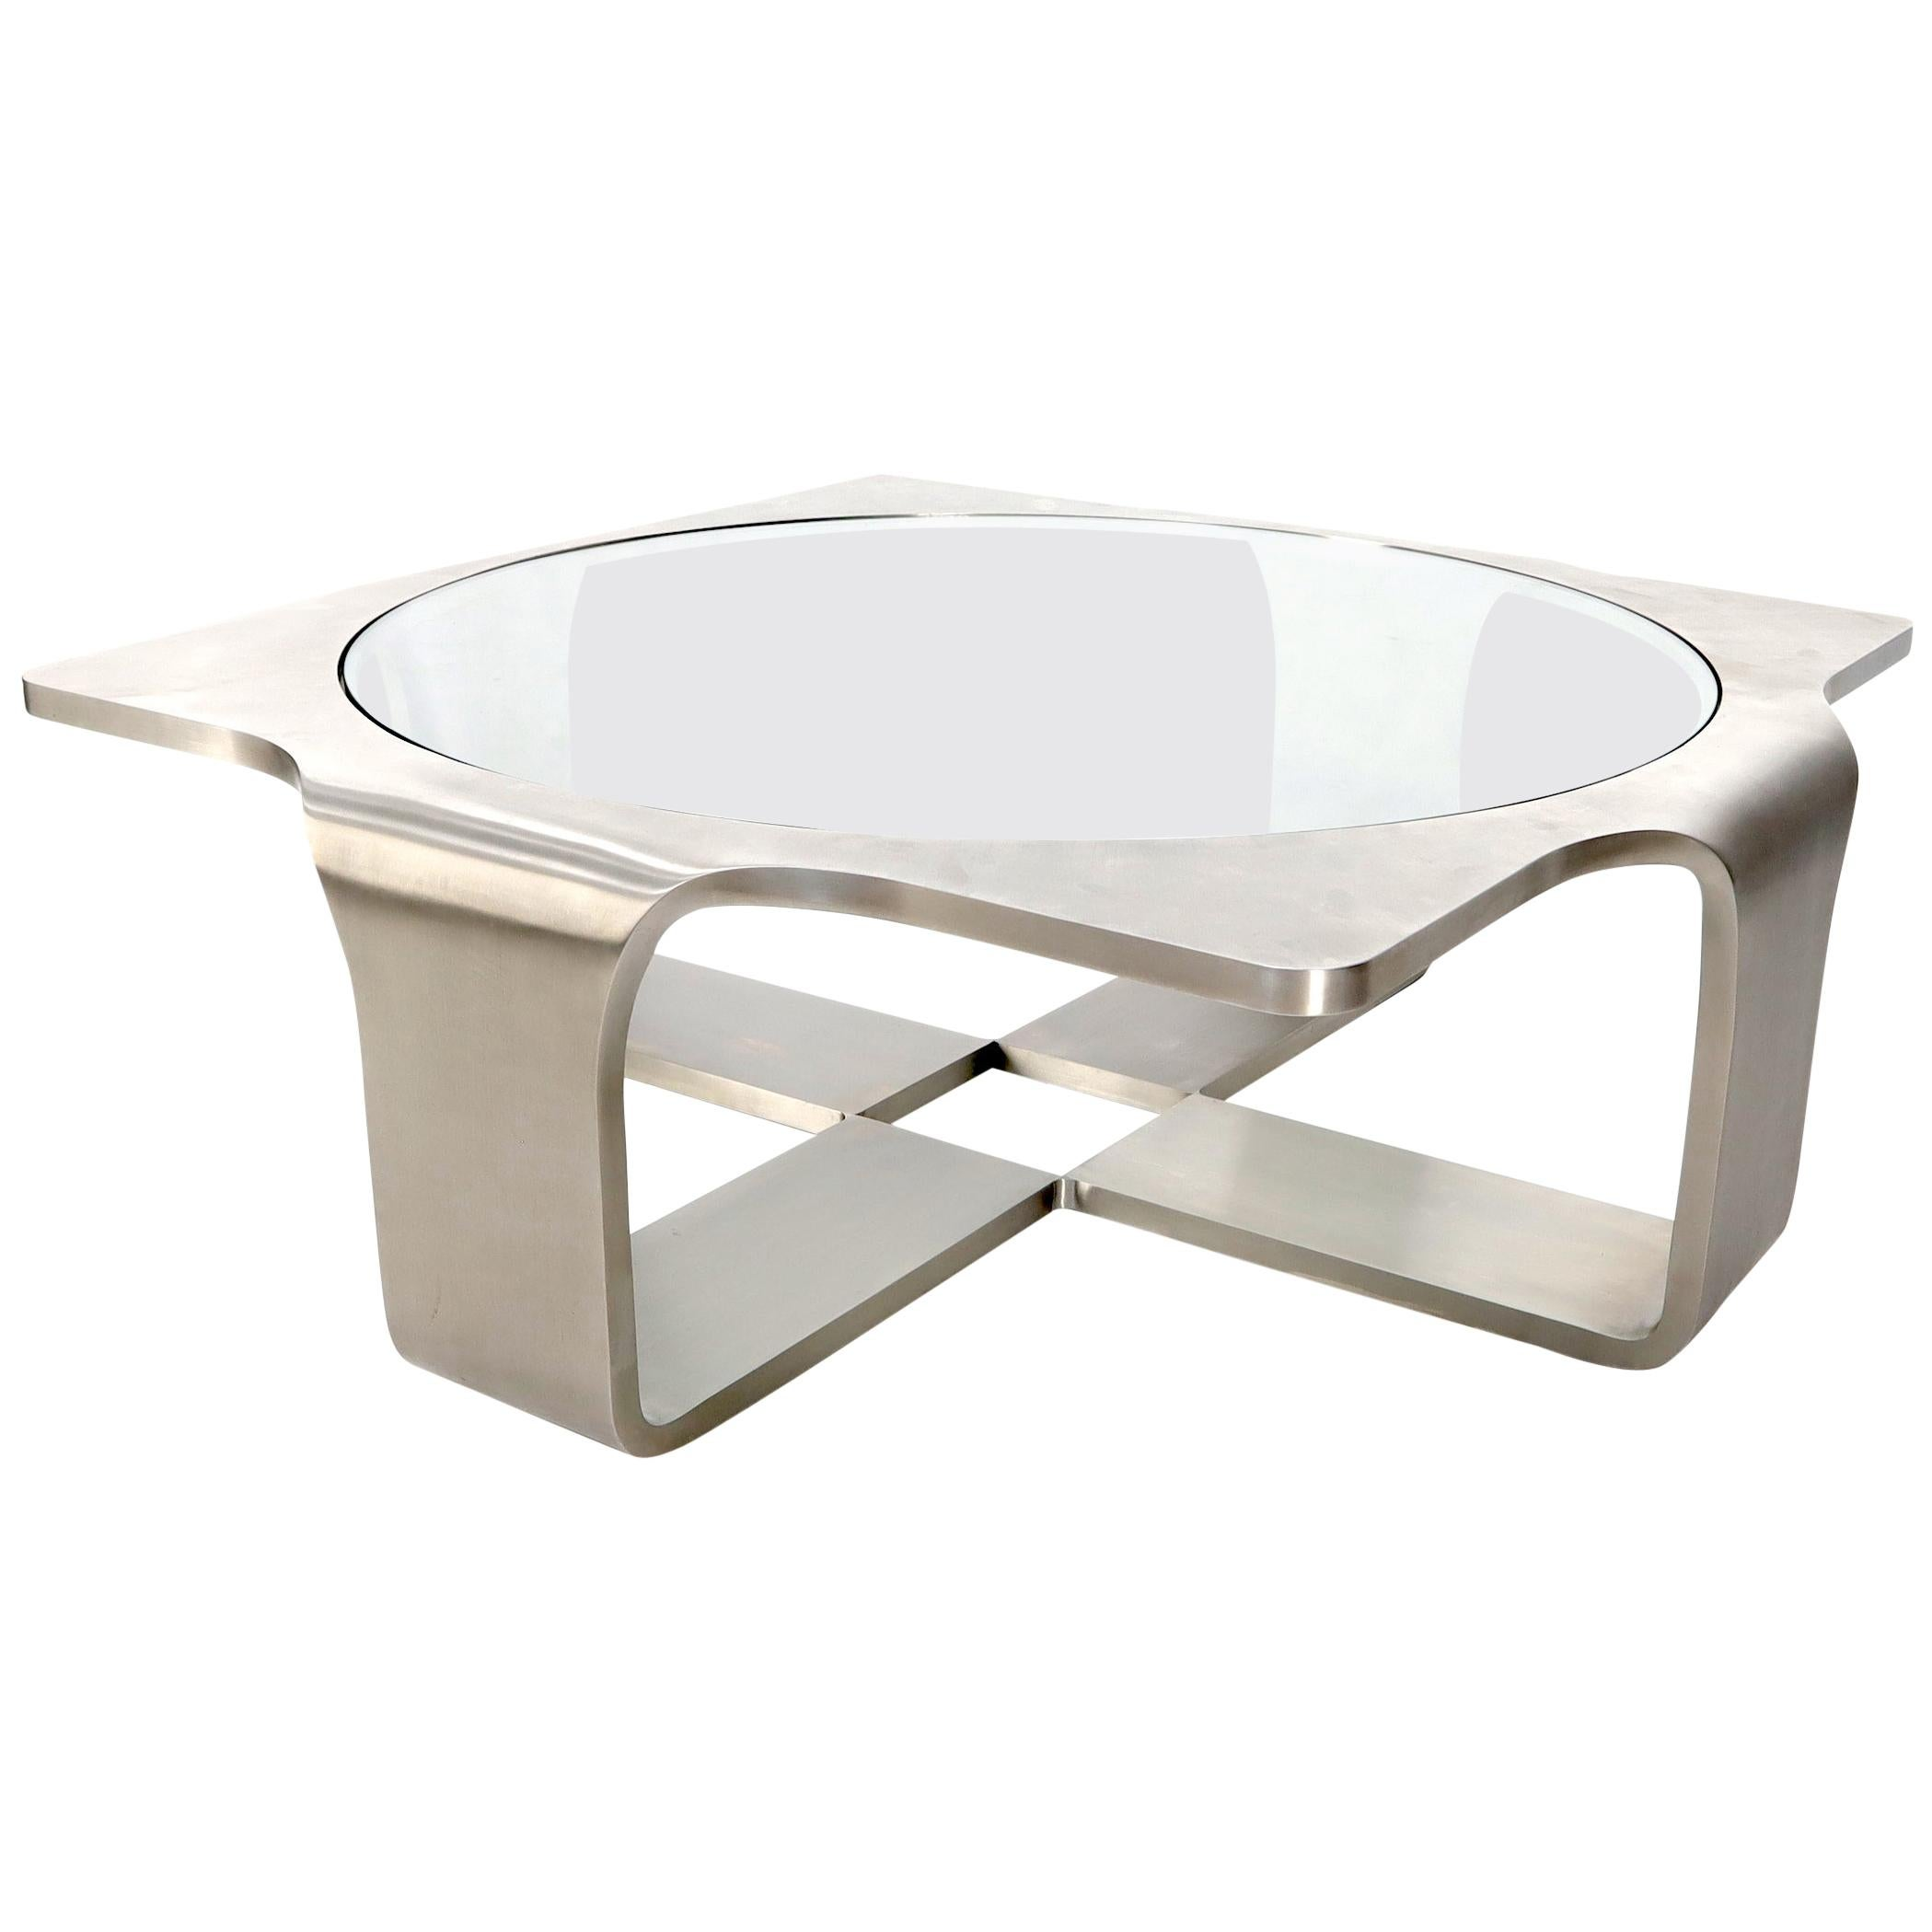 """Phenomenal 1"""" Thick Bent Stainless Steel Square Coffee Table Glass Top"""